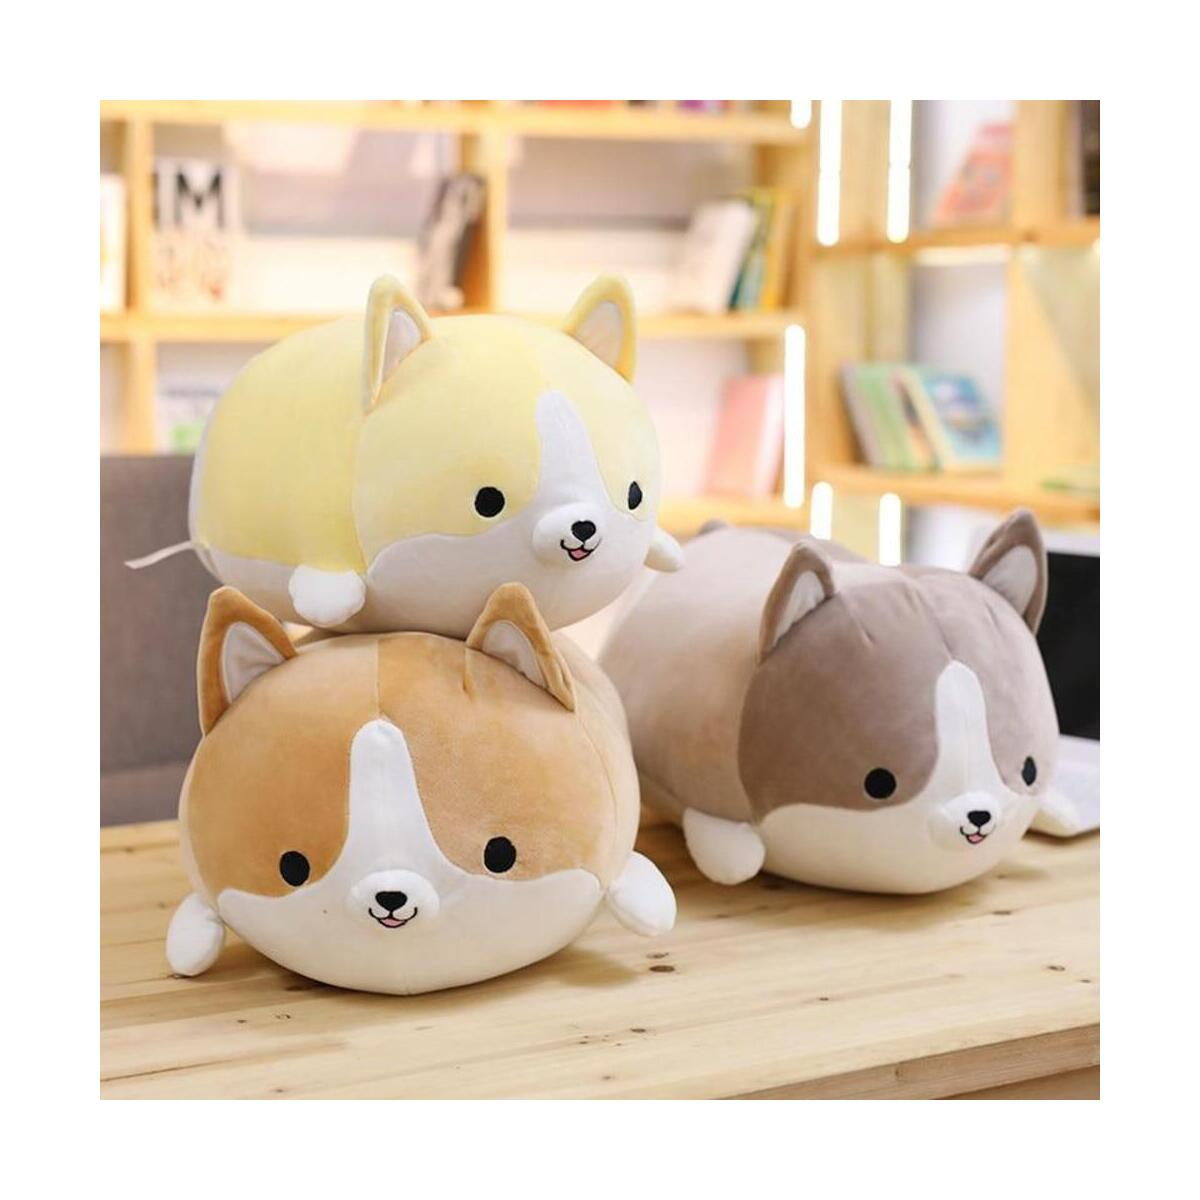 Corgi Dog Plush Pillow, Soft Cute Shiba Inu Akita Stuffed Animals Toy Gifts